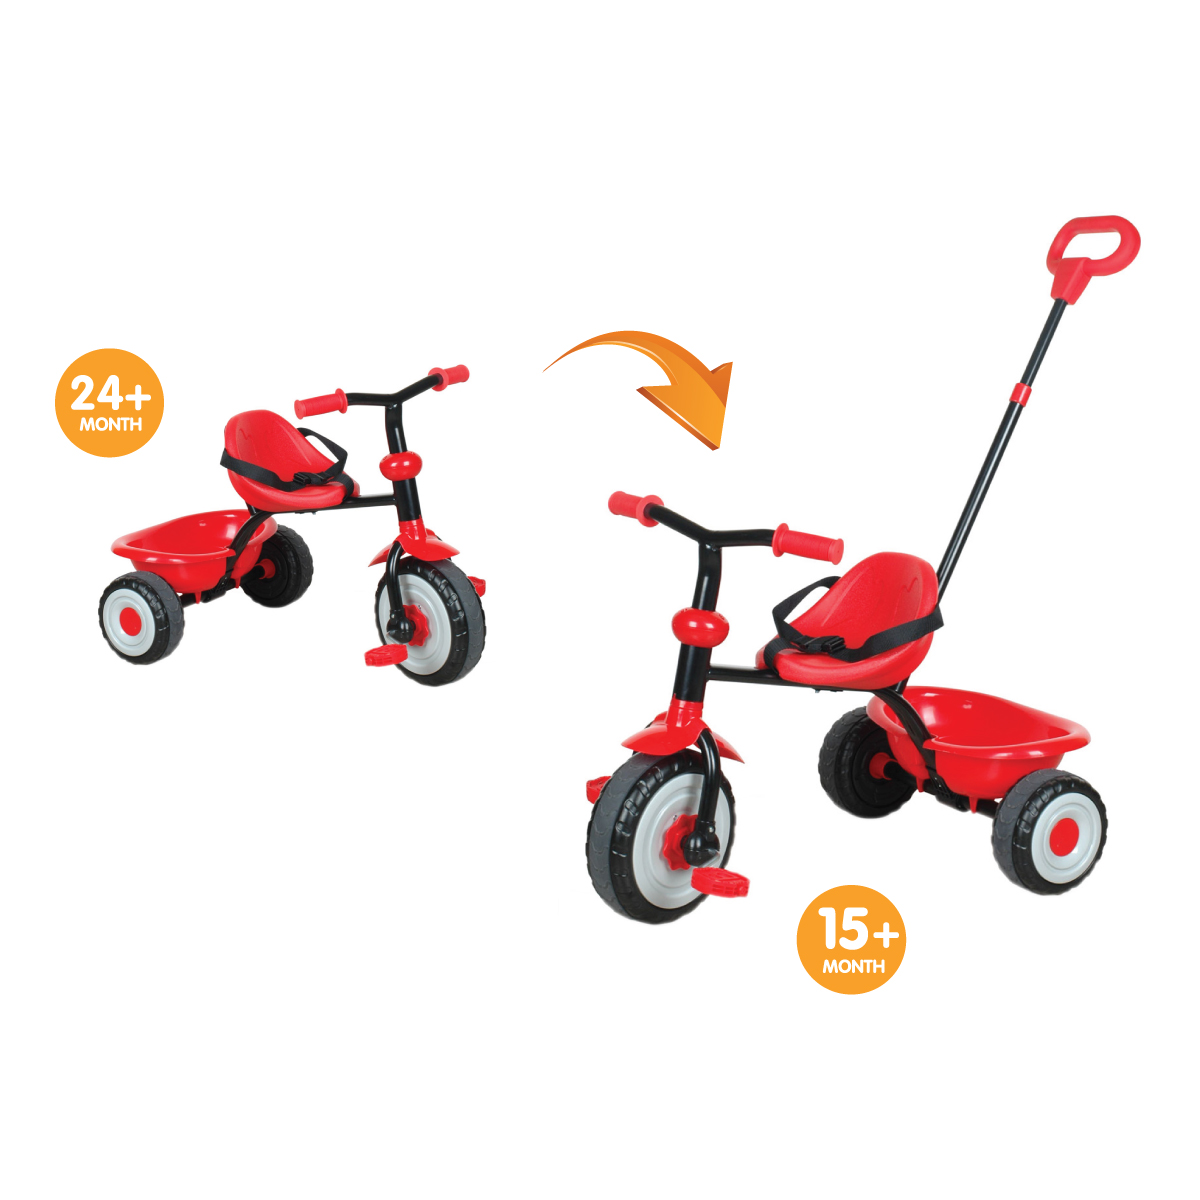 Toddler Bike With Parent Handle